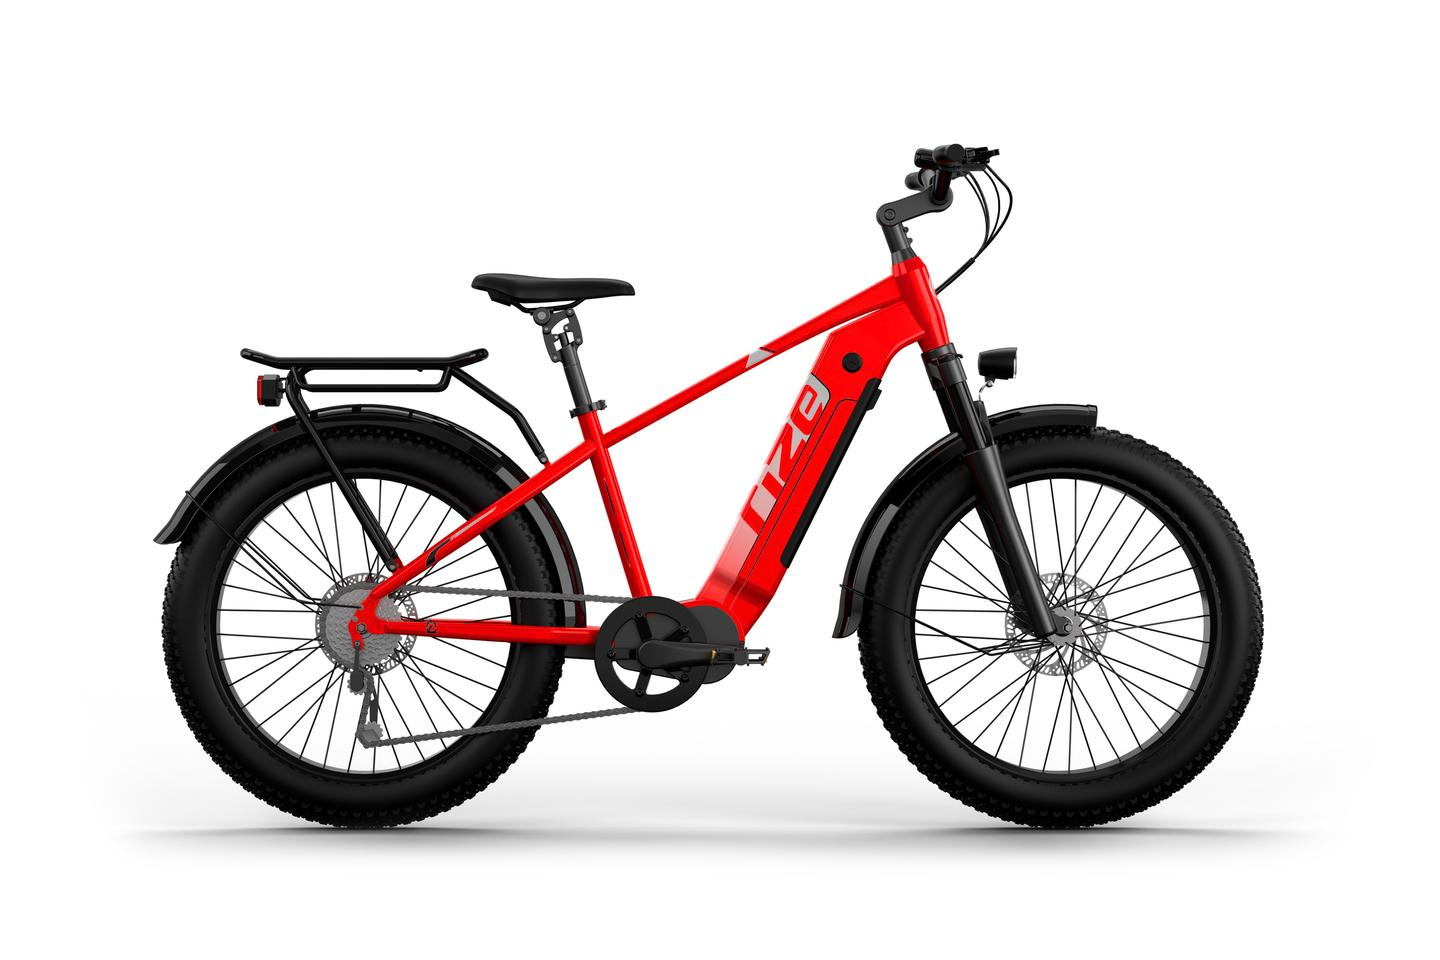 The RX Pro features a 1500W (peak) mid-drive motor and can be used in a dual battery configuration for up to 90 miles of range per charge